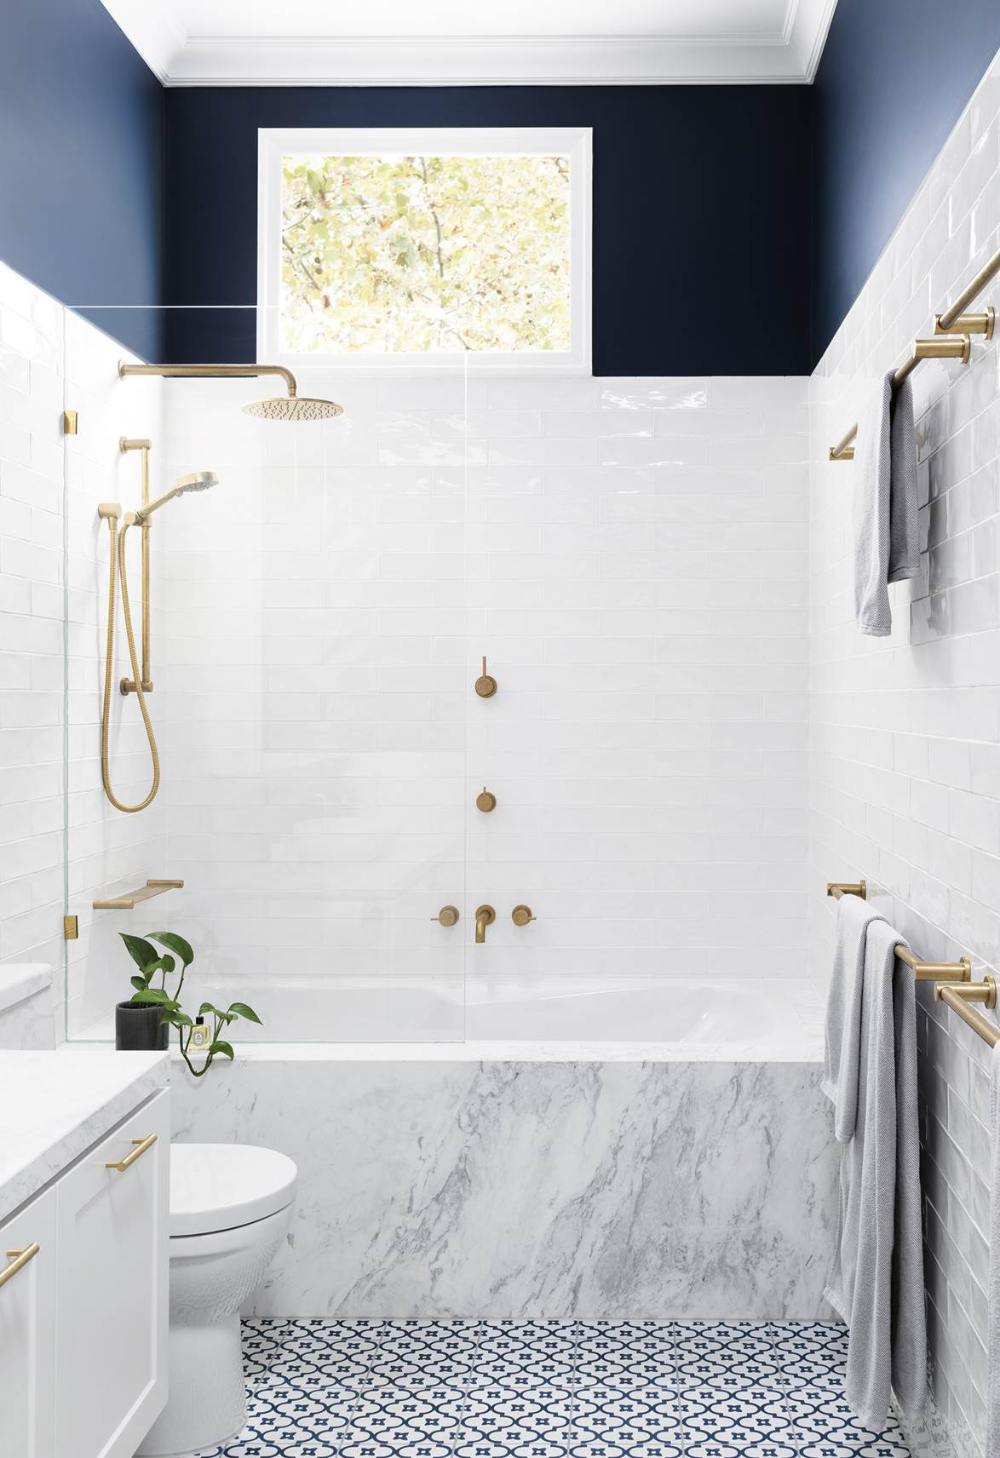 15 Bathrooms With Clever Ideas To Steal In 2020 With Images